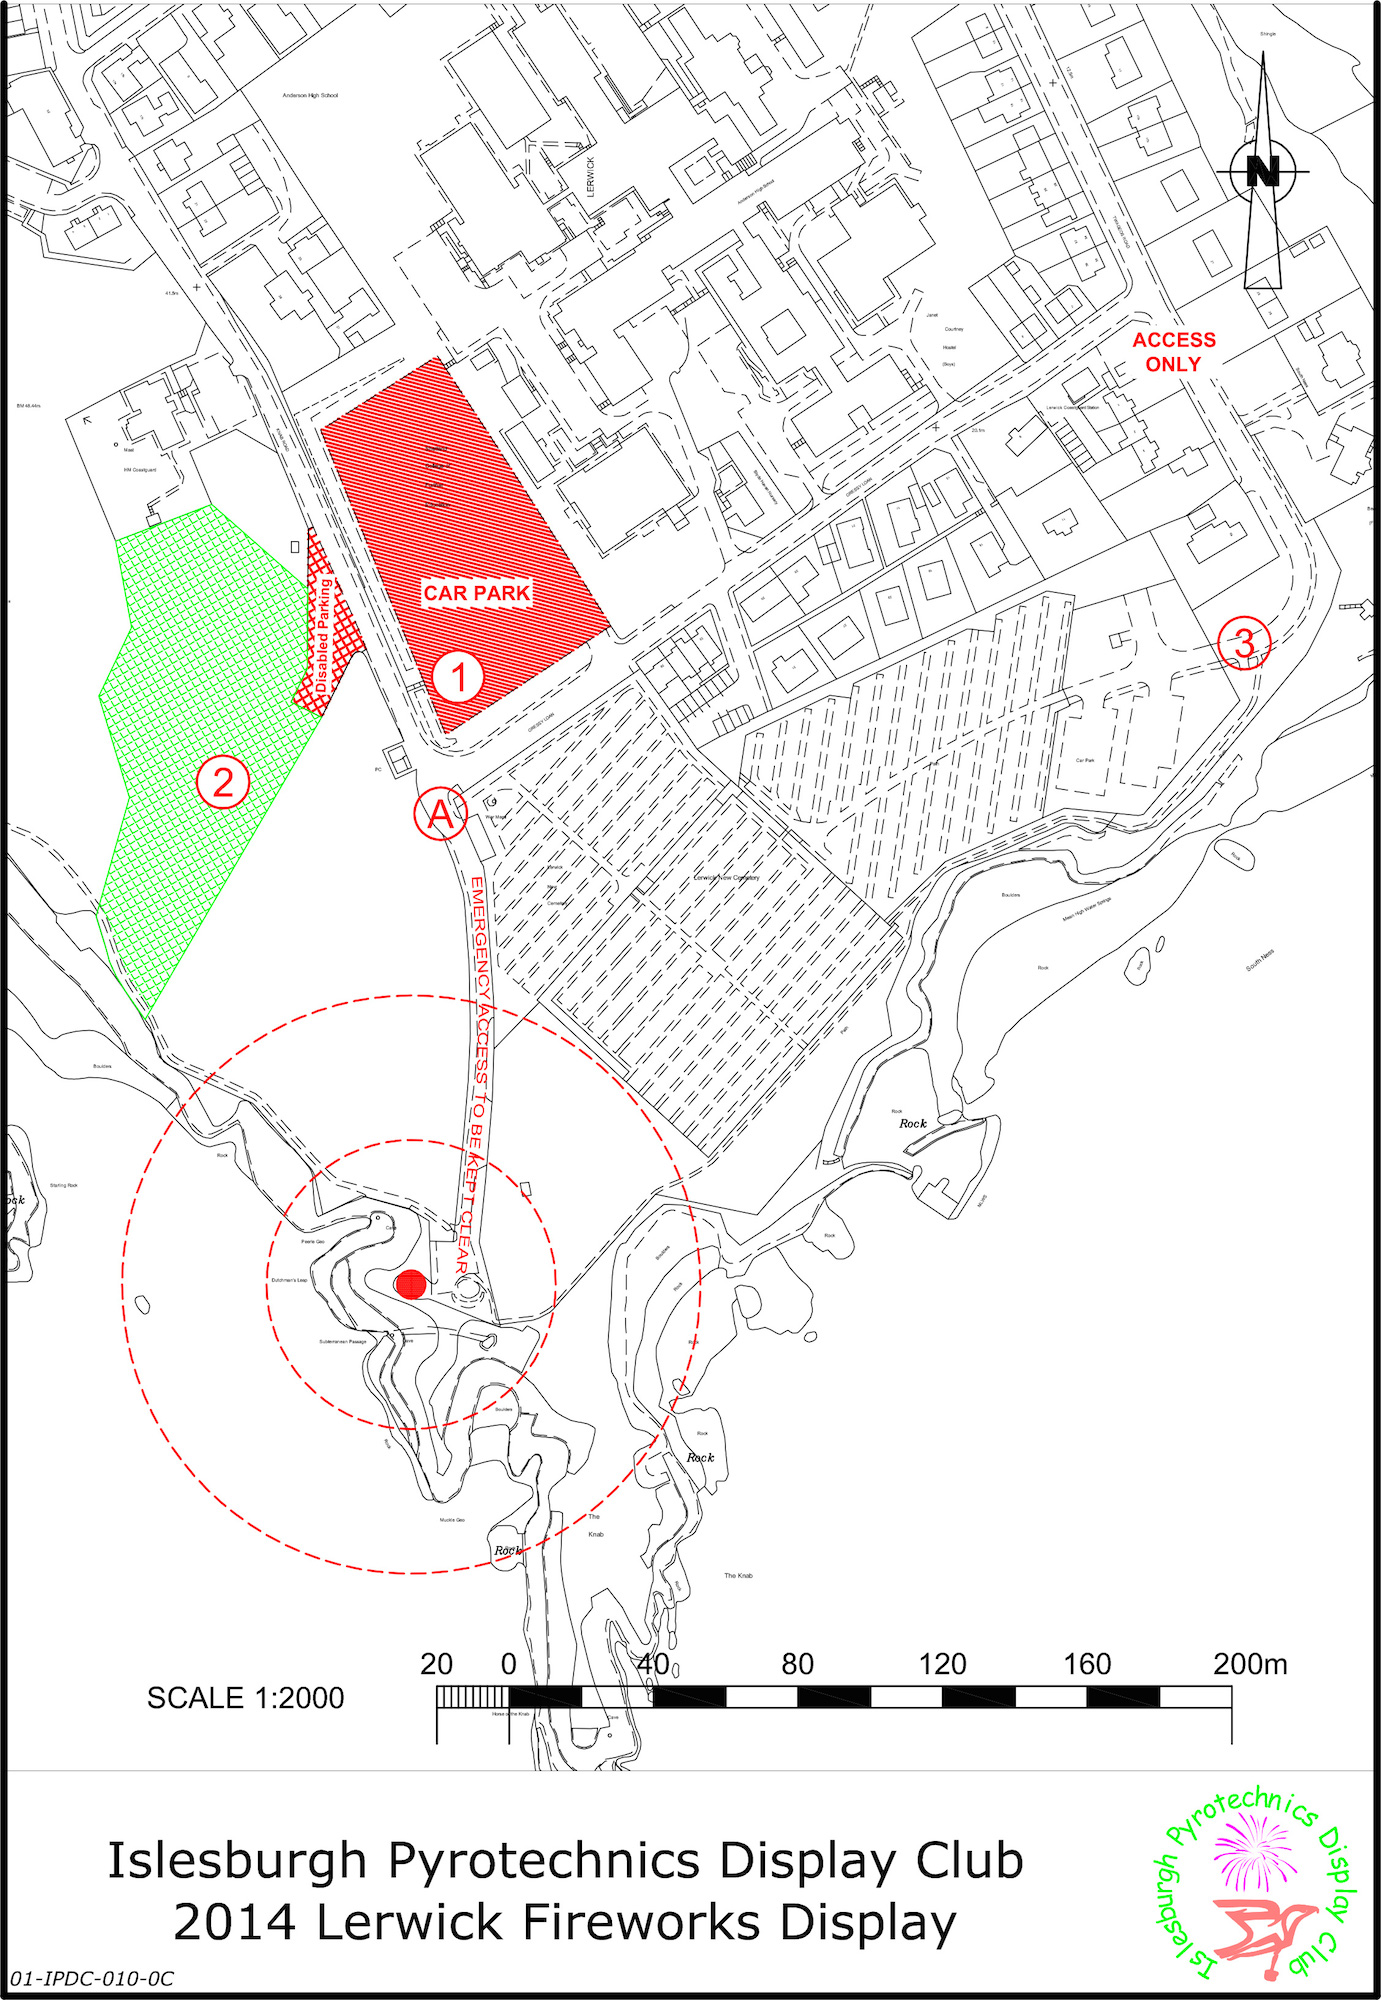 This year's fireworks display will be held at The Knab. See map for details.